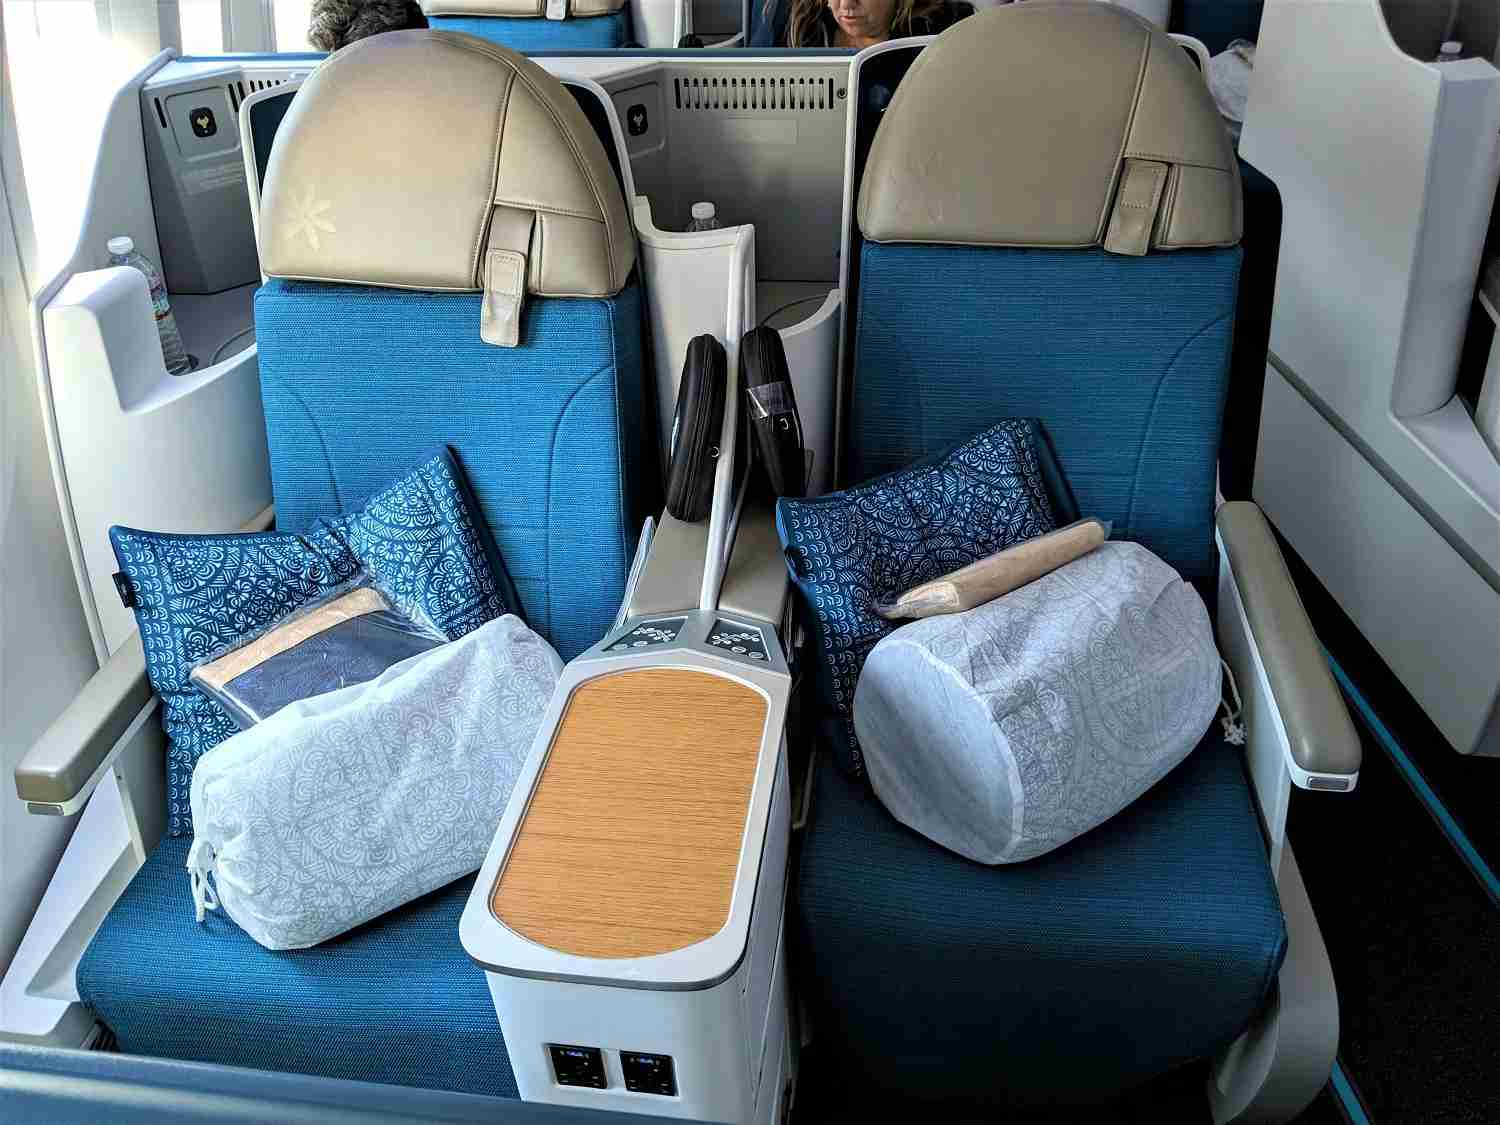 Air Tahiti Nui business class (JT Genter/The Points Guy)